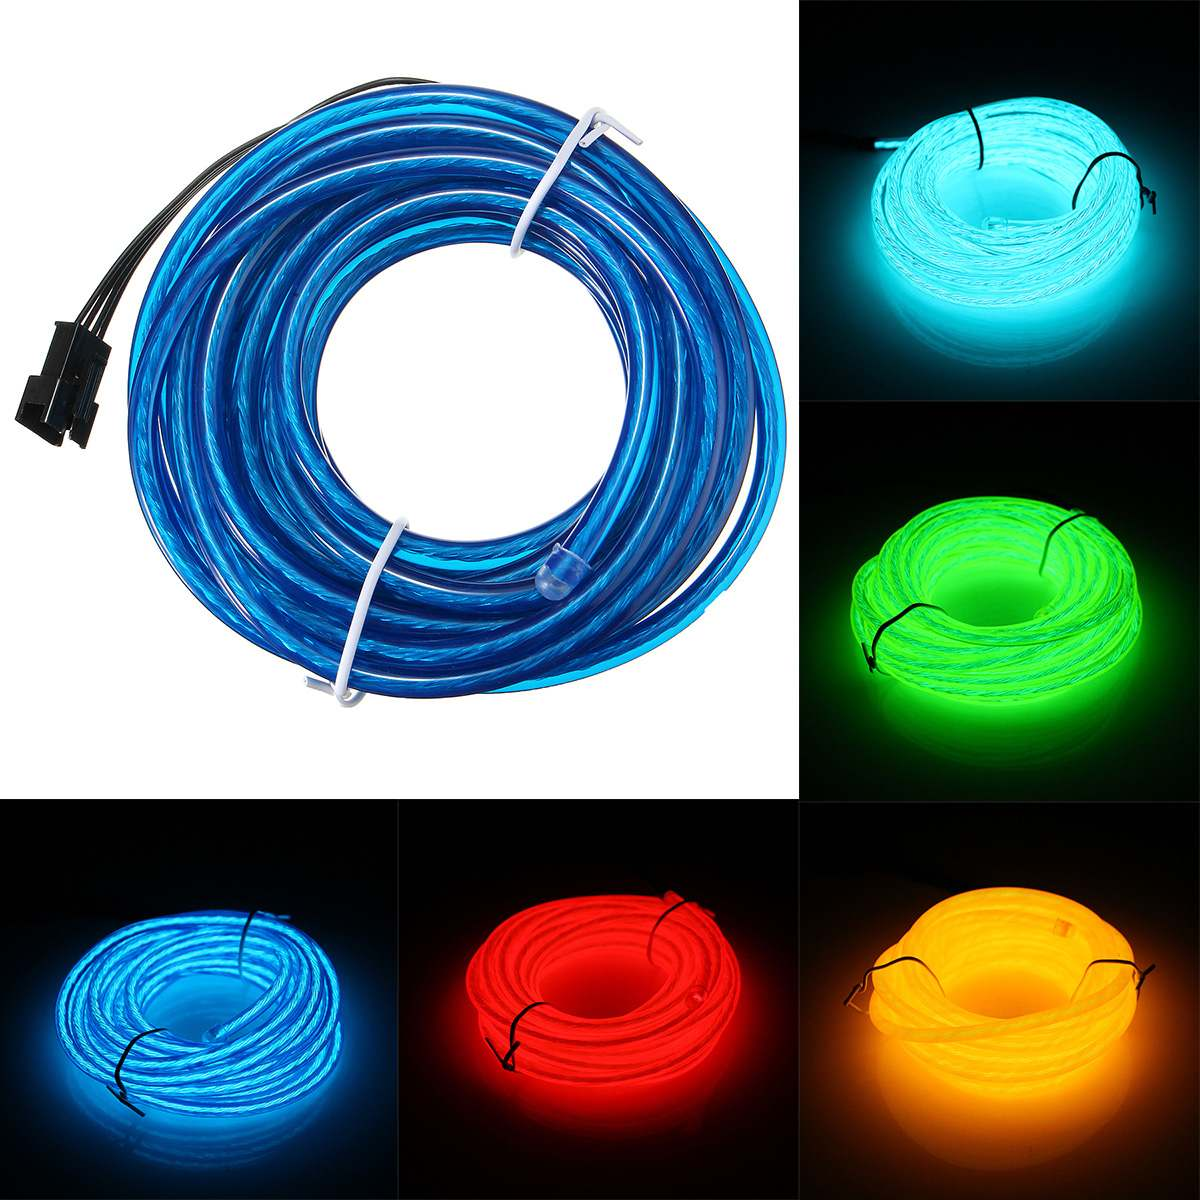 Smuxi 5M Neon Light Glow <font><b>EL</b></font> Wire LED Strip Light Tube 5MM <font><b>Car</b></font> Dance Party Bar Decor With <font><b>Controller</b></font> DC3V image